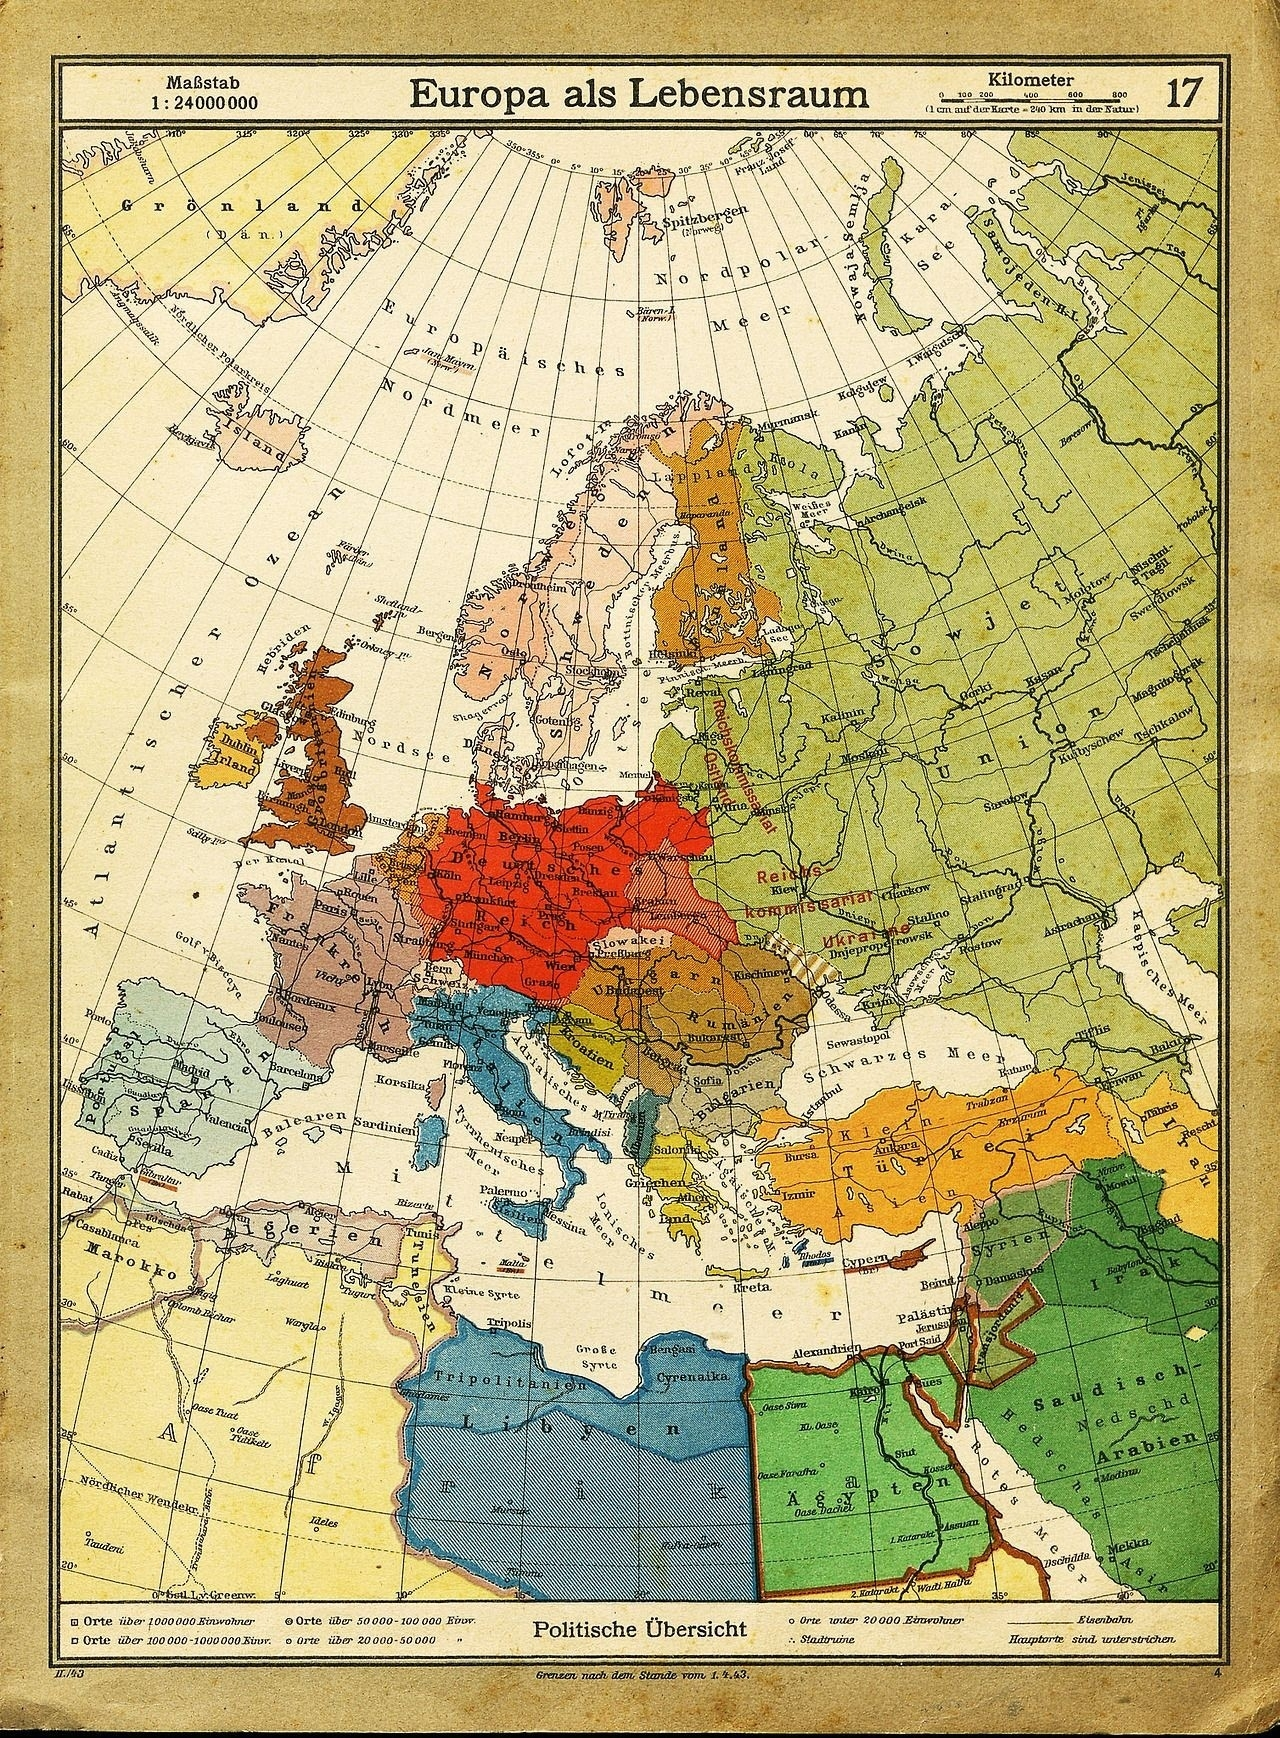 Maps Of Germany Throughout History - World Map within Maps Of Germany Throughout History